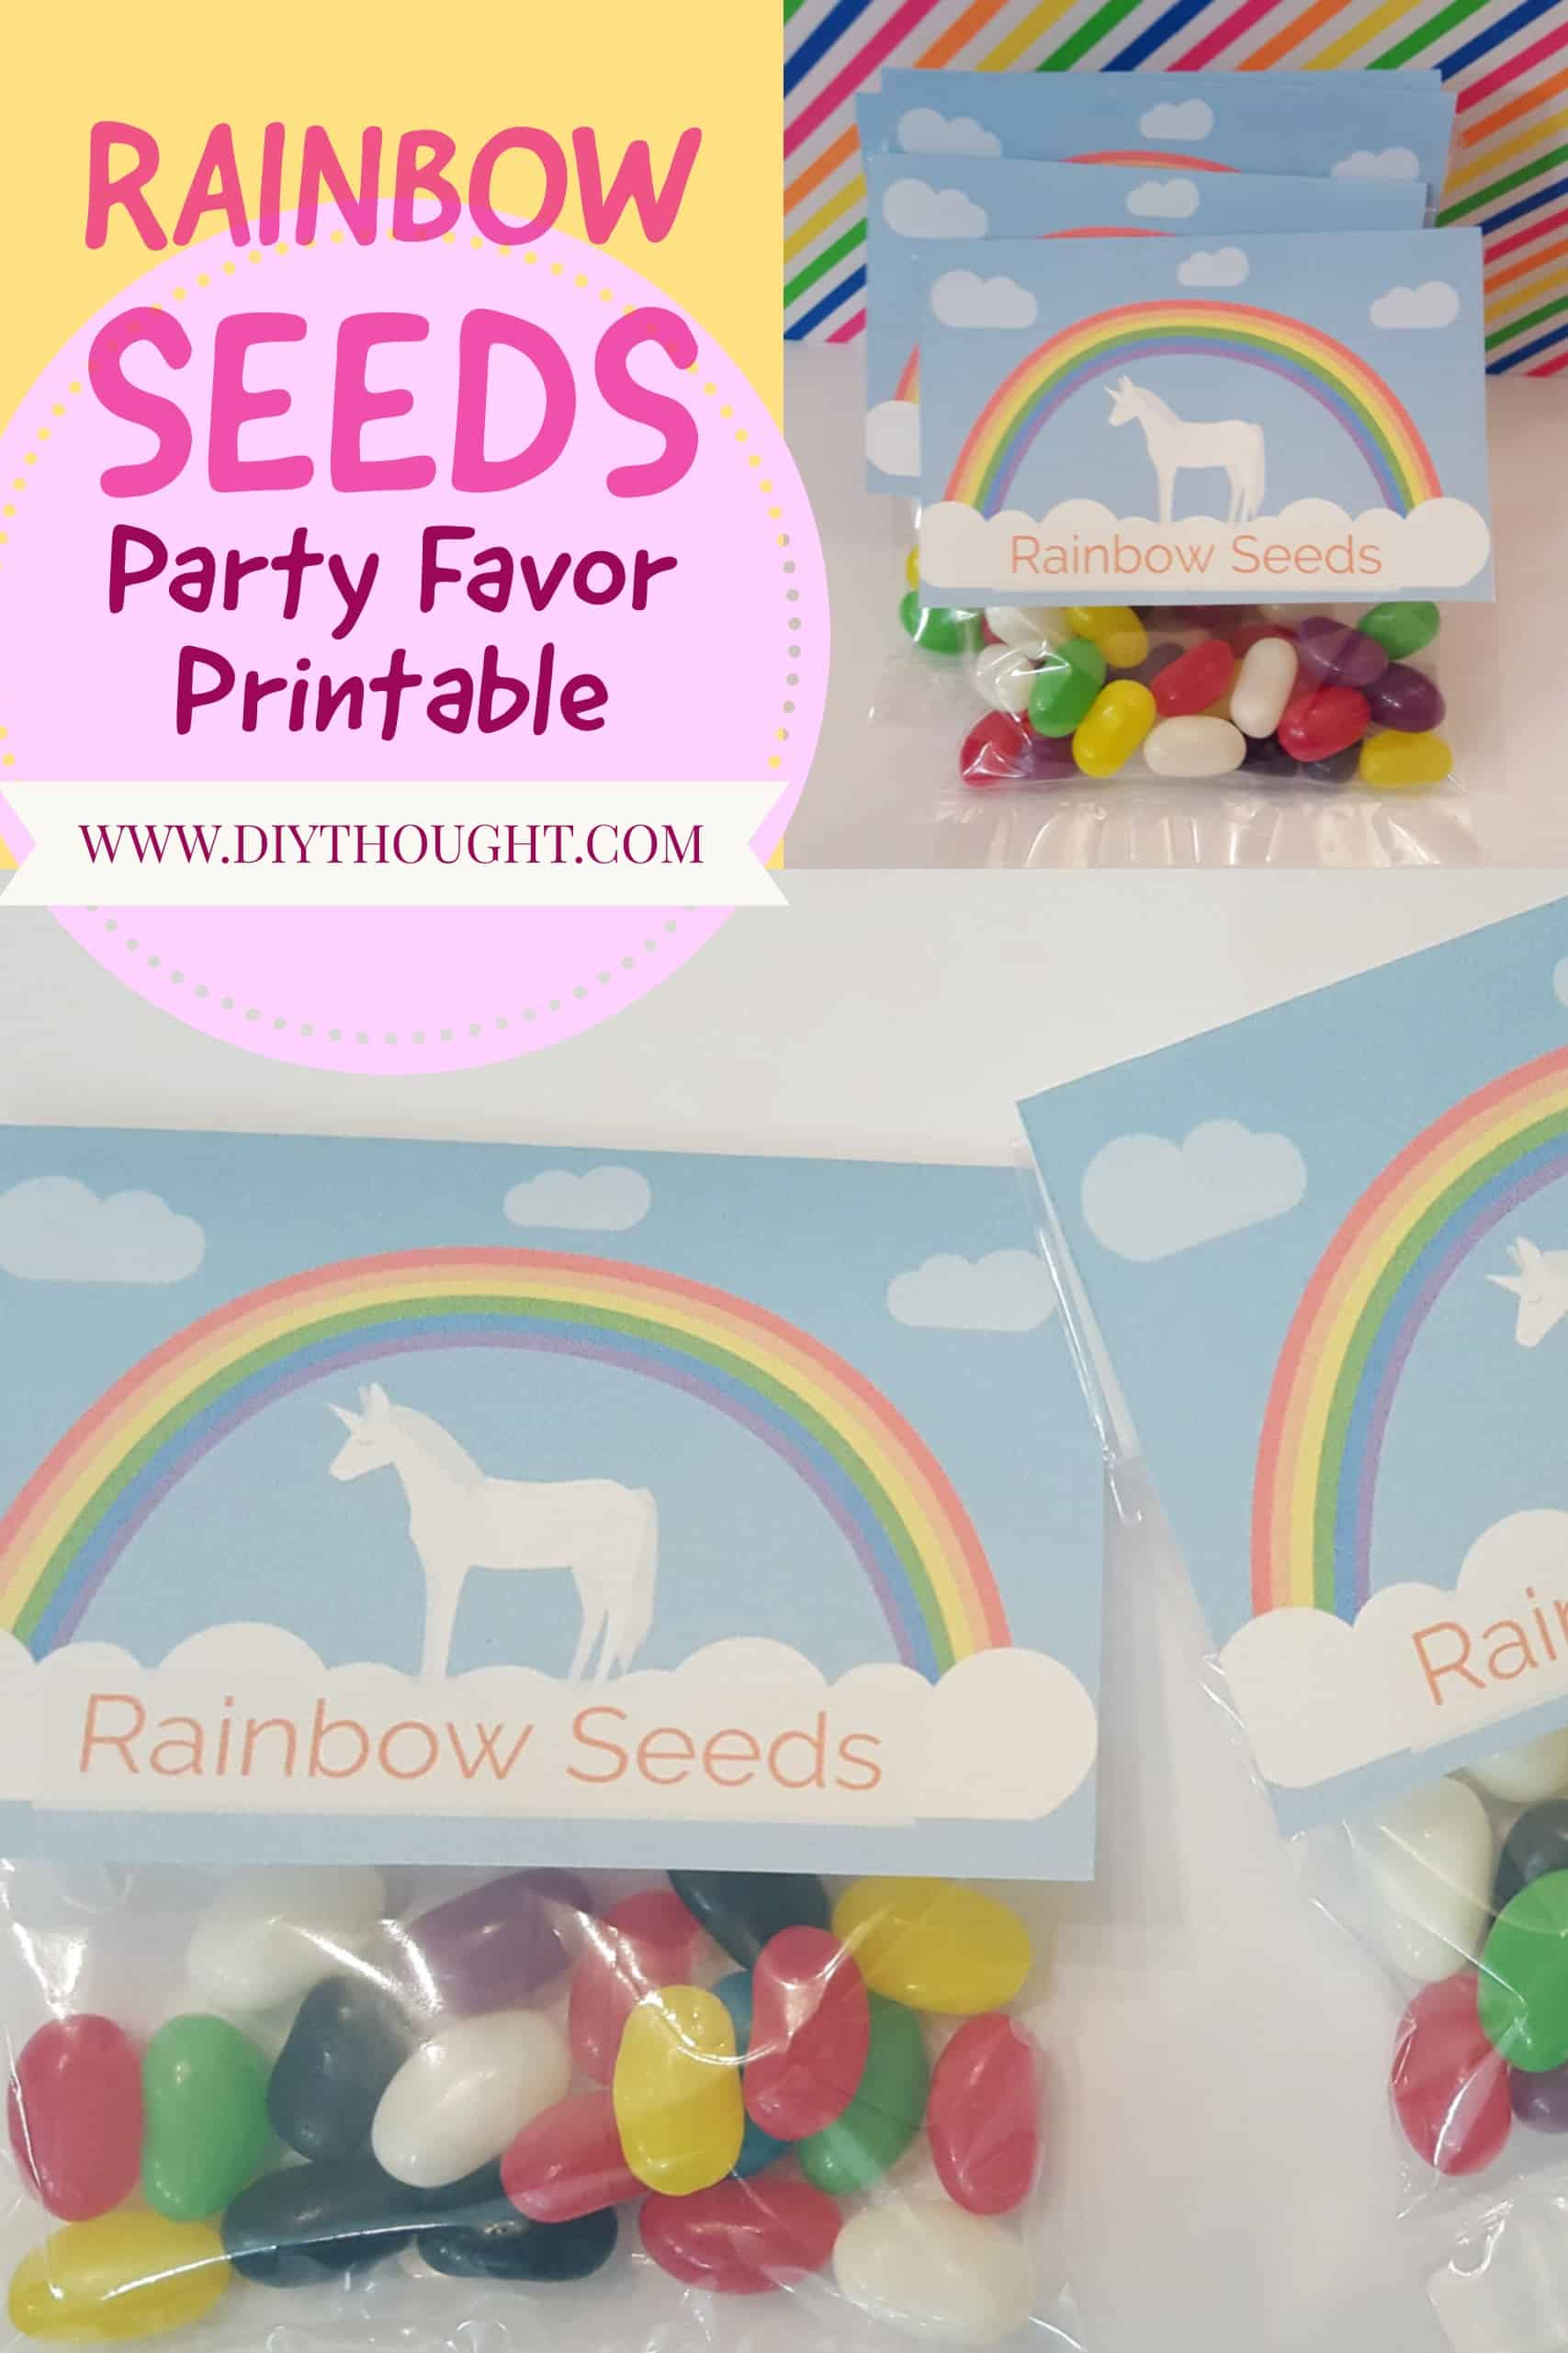 Rainbow Seeds & Unicorn Poop Party Favor Printable - diy Thought